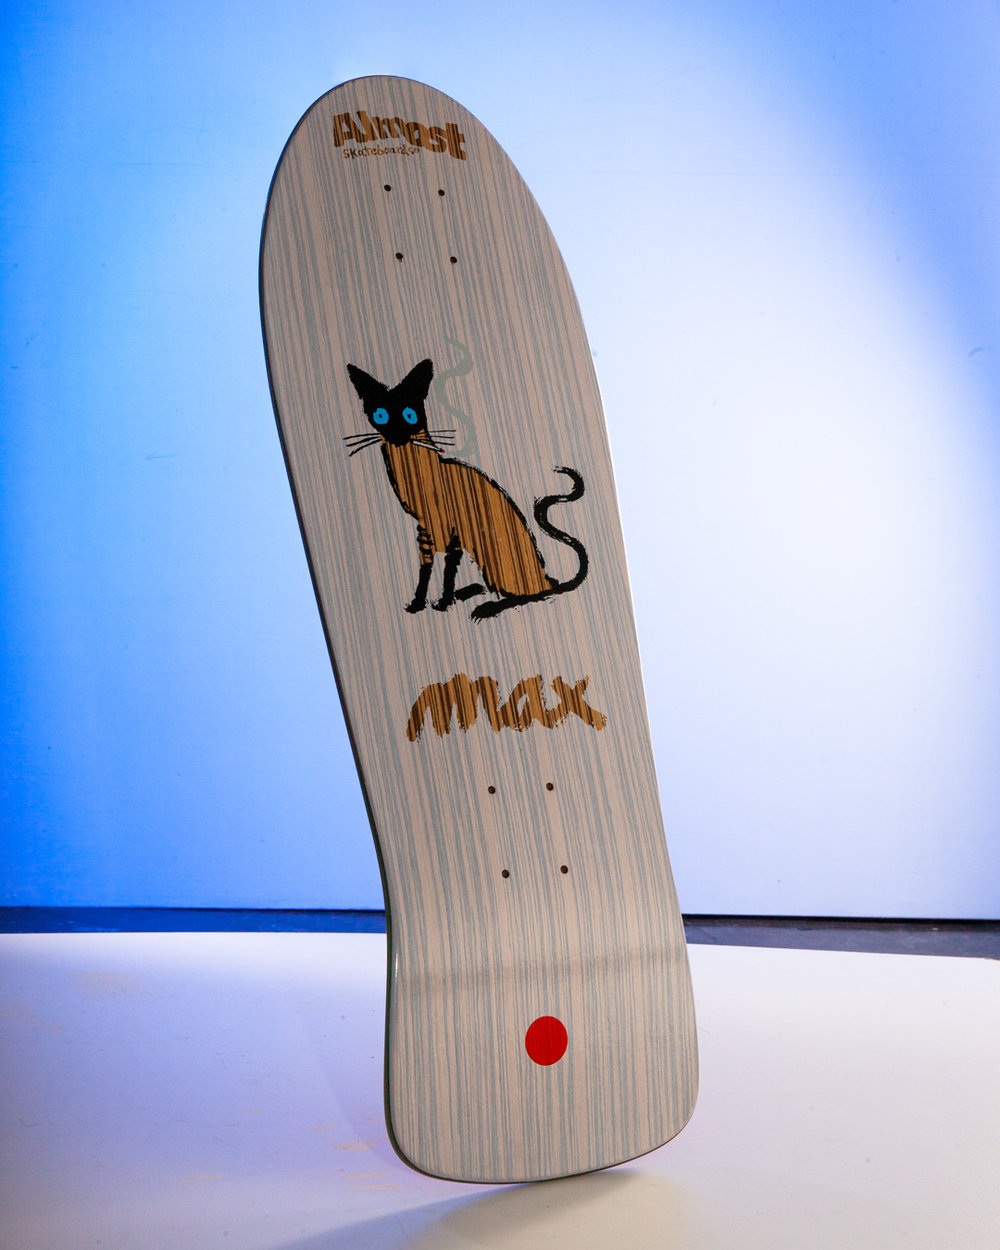 Almost_skateboards-Max-geronzi_80s_shape-deck_1350x1080.jpg